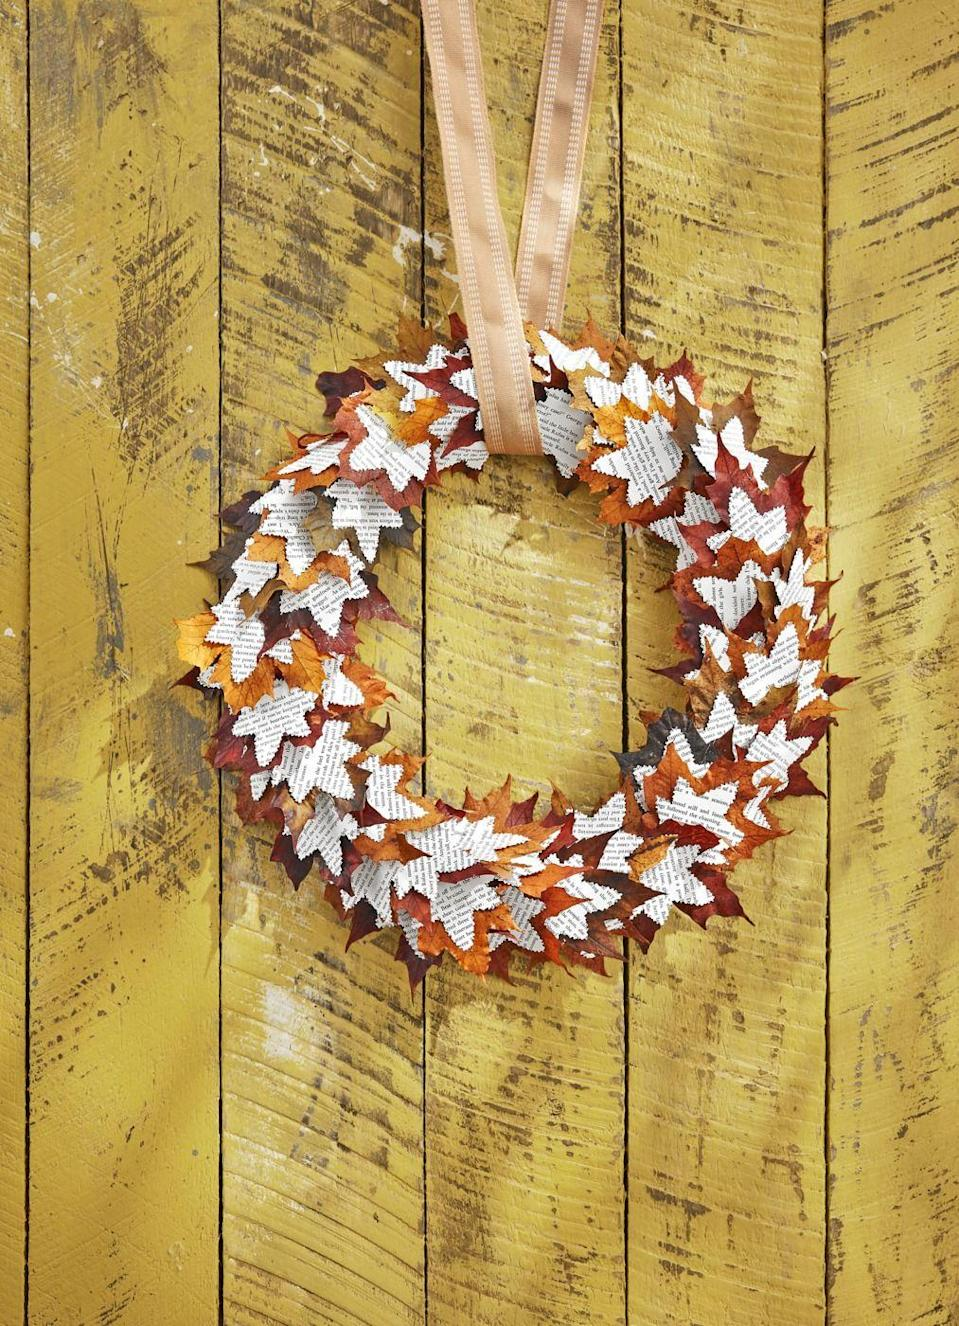 "<p>Greet your Thanksgiving guests with a wreath that celebrates the fall foliage. Although it looks tricky to create, it's actually a lot simpler than you think—and isn't that something to be thankful for?</p><p><strong>Make the Wreath: </strong>Draw a 3-inch-wide maple leaf shape on a piece of cardboard and cut out to create a stencil. Trace on original pages (or, if preferred, photocopied pages) of a vintage book—consider a fall-themed title or mystery novel—and cut out approximately 100 leaves with decorative scissors that have a ""torn paper"" edge. Attach book page leaves to maple leaves with hot-glue. Attach layered leaves to a 16-inch wreath form with hot-glue, layering and overlapping them as you go. Hang with burlap ribbon. </p><p><a class=""link rapid-noclick-resp"" href=""https://www.amazon.com/Fiskars-Deckle-Paper-Scissor-12-92187897/dp/B000BDH9KU/?tag=syn-yahoo-20&ascsubtag=%5Bartid%7C10050.g.2063%5Bsrc%7Cyahoo-us"" rel=""nofollow noopener"" target=""_blank"" data-ylk=""slk:SHOP SCISSORS"">SHOP SCISSORS</a></p>"